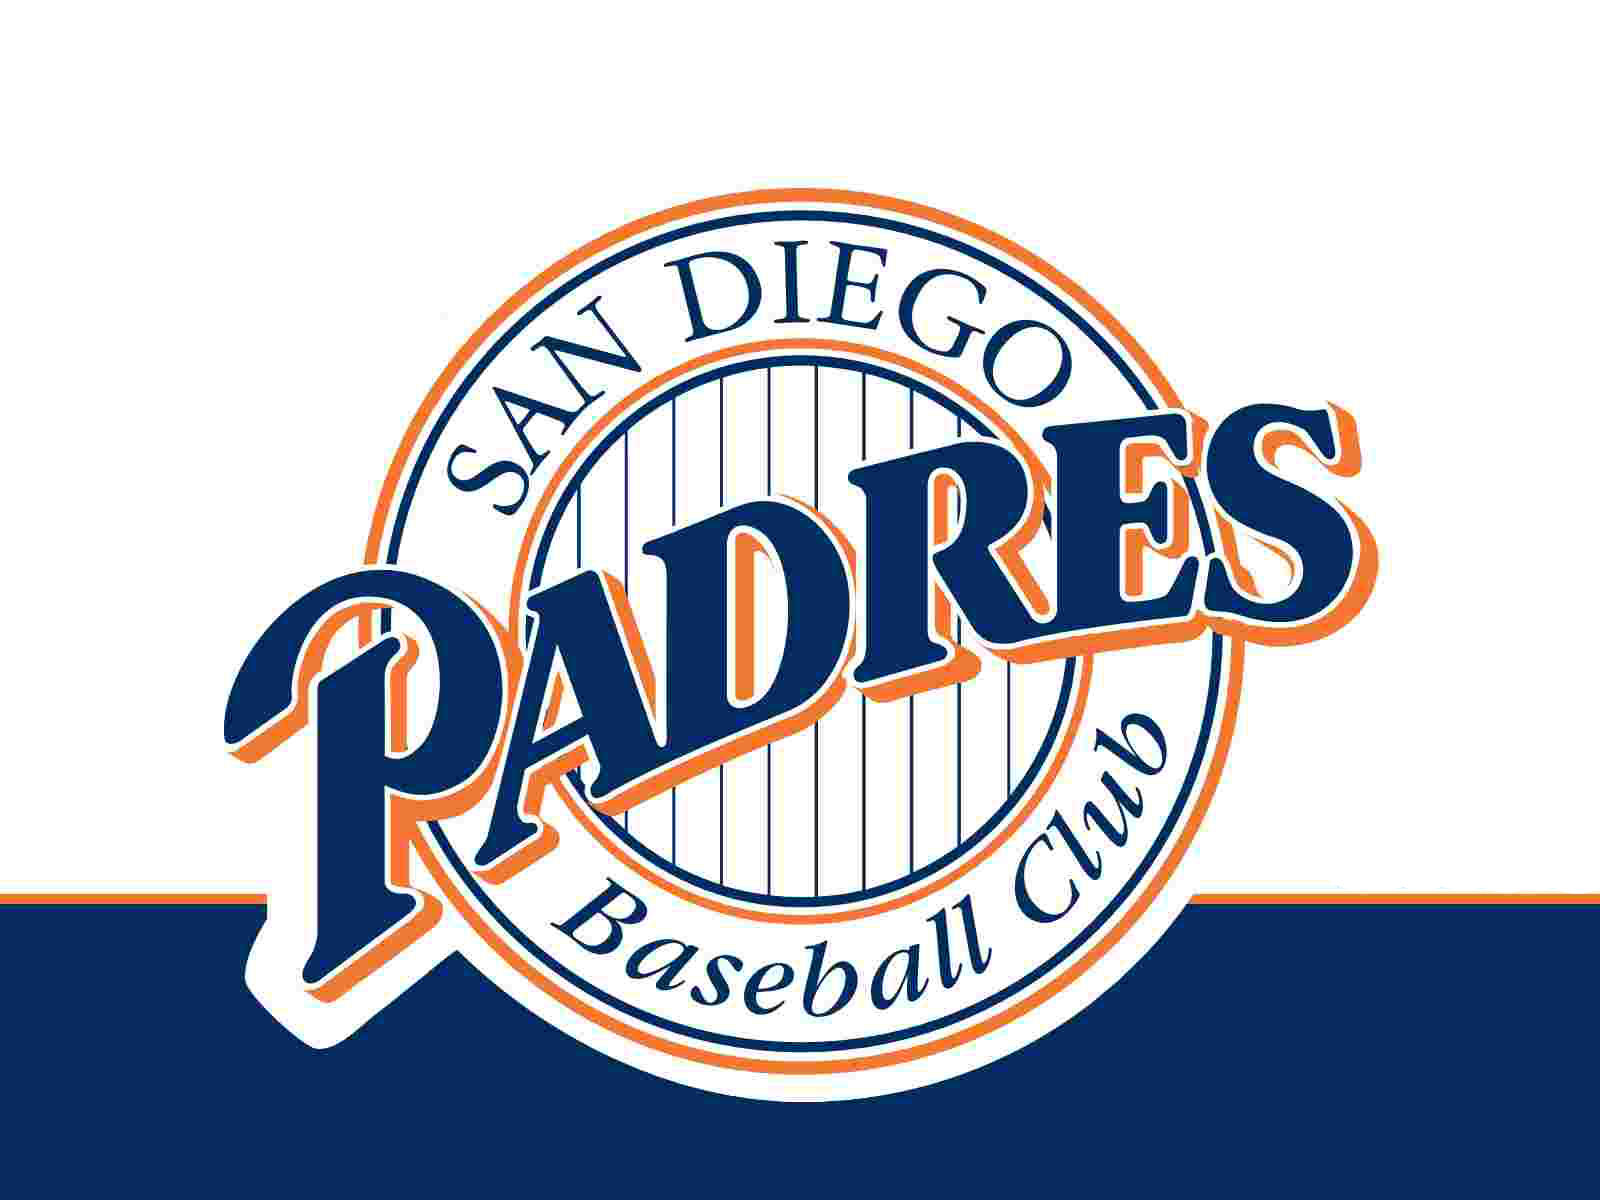 SAN DIEGO PADRES mlb baseball 10 wallpaper background 1600x1200